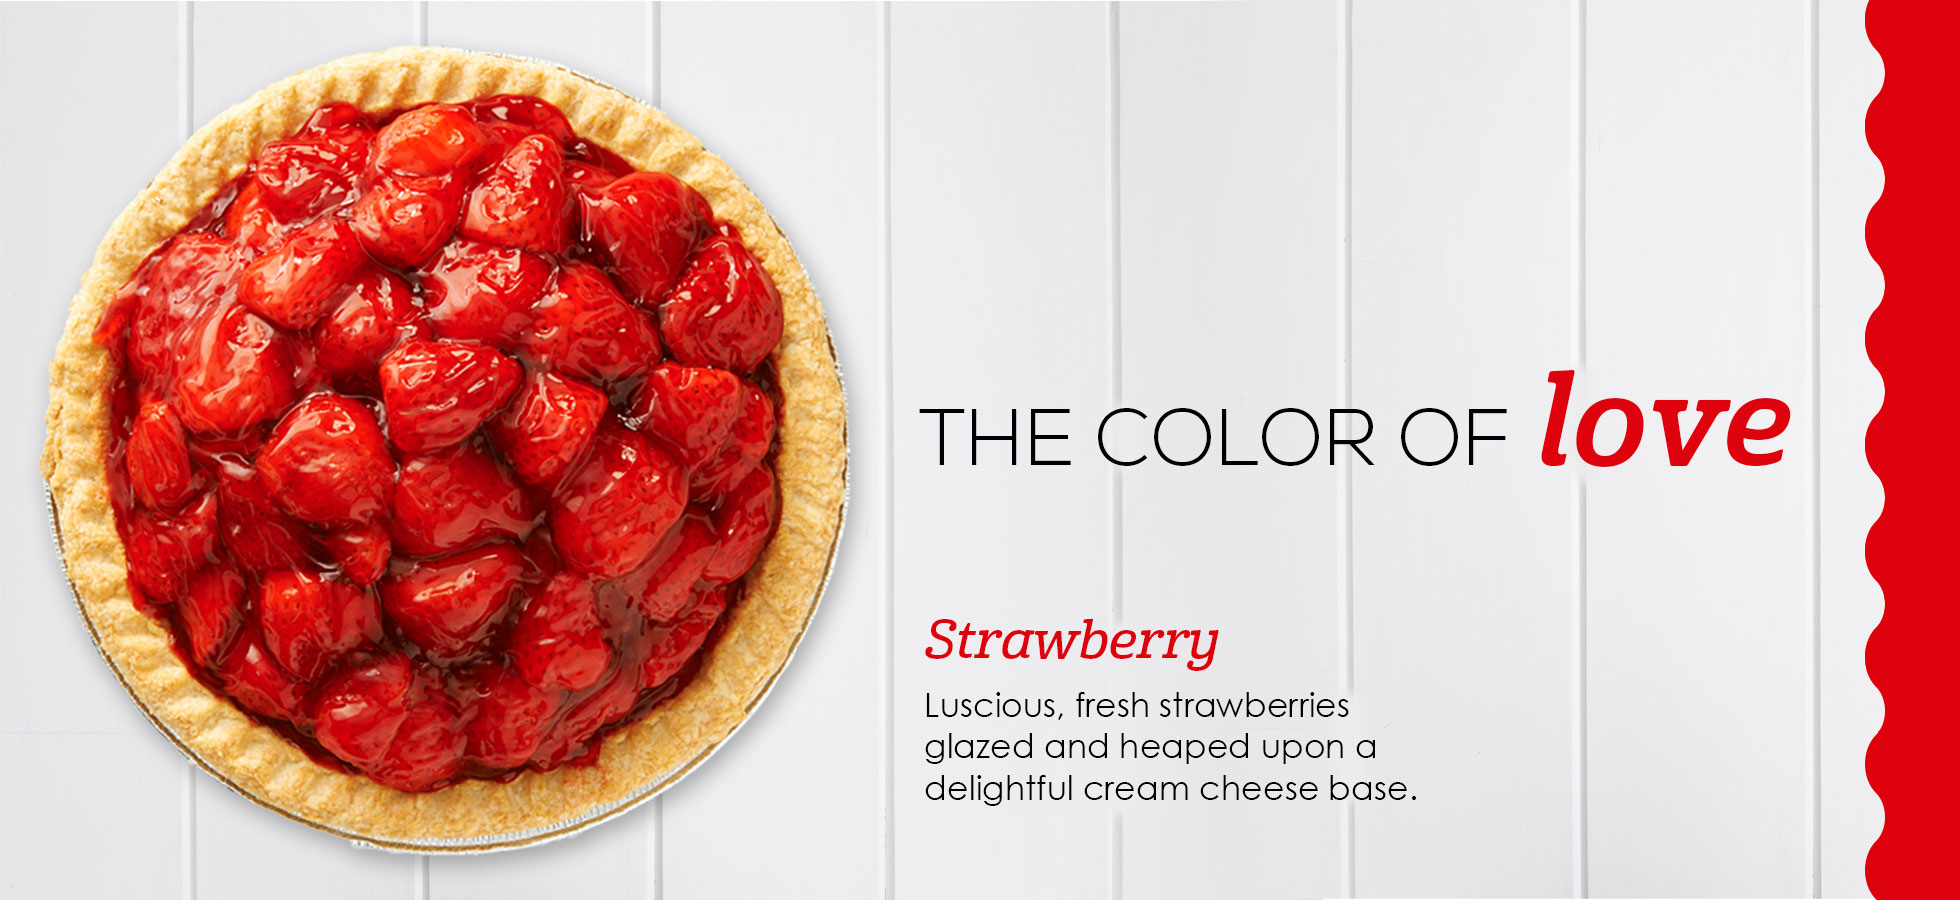 Strawberry Pie – The color of love!